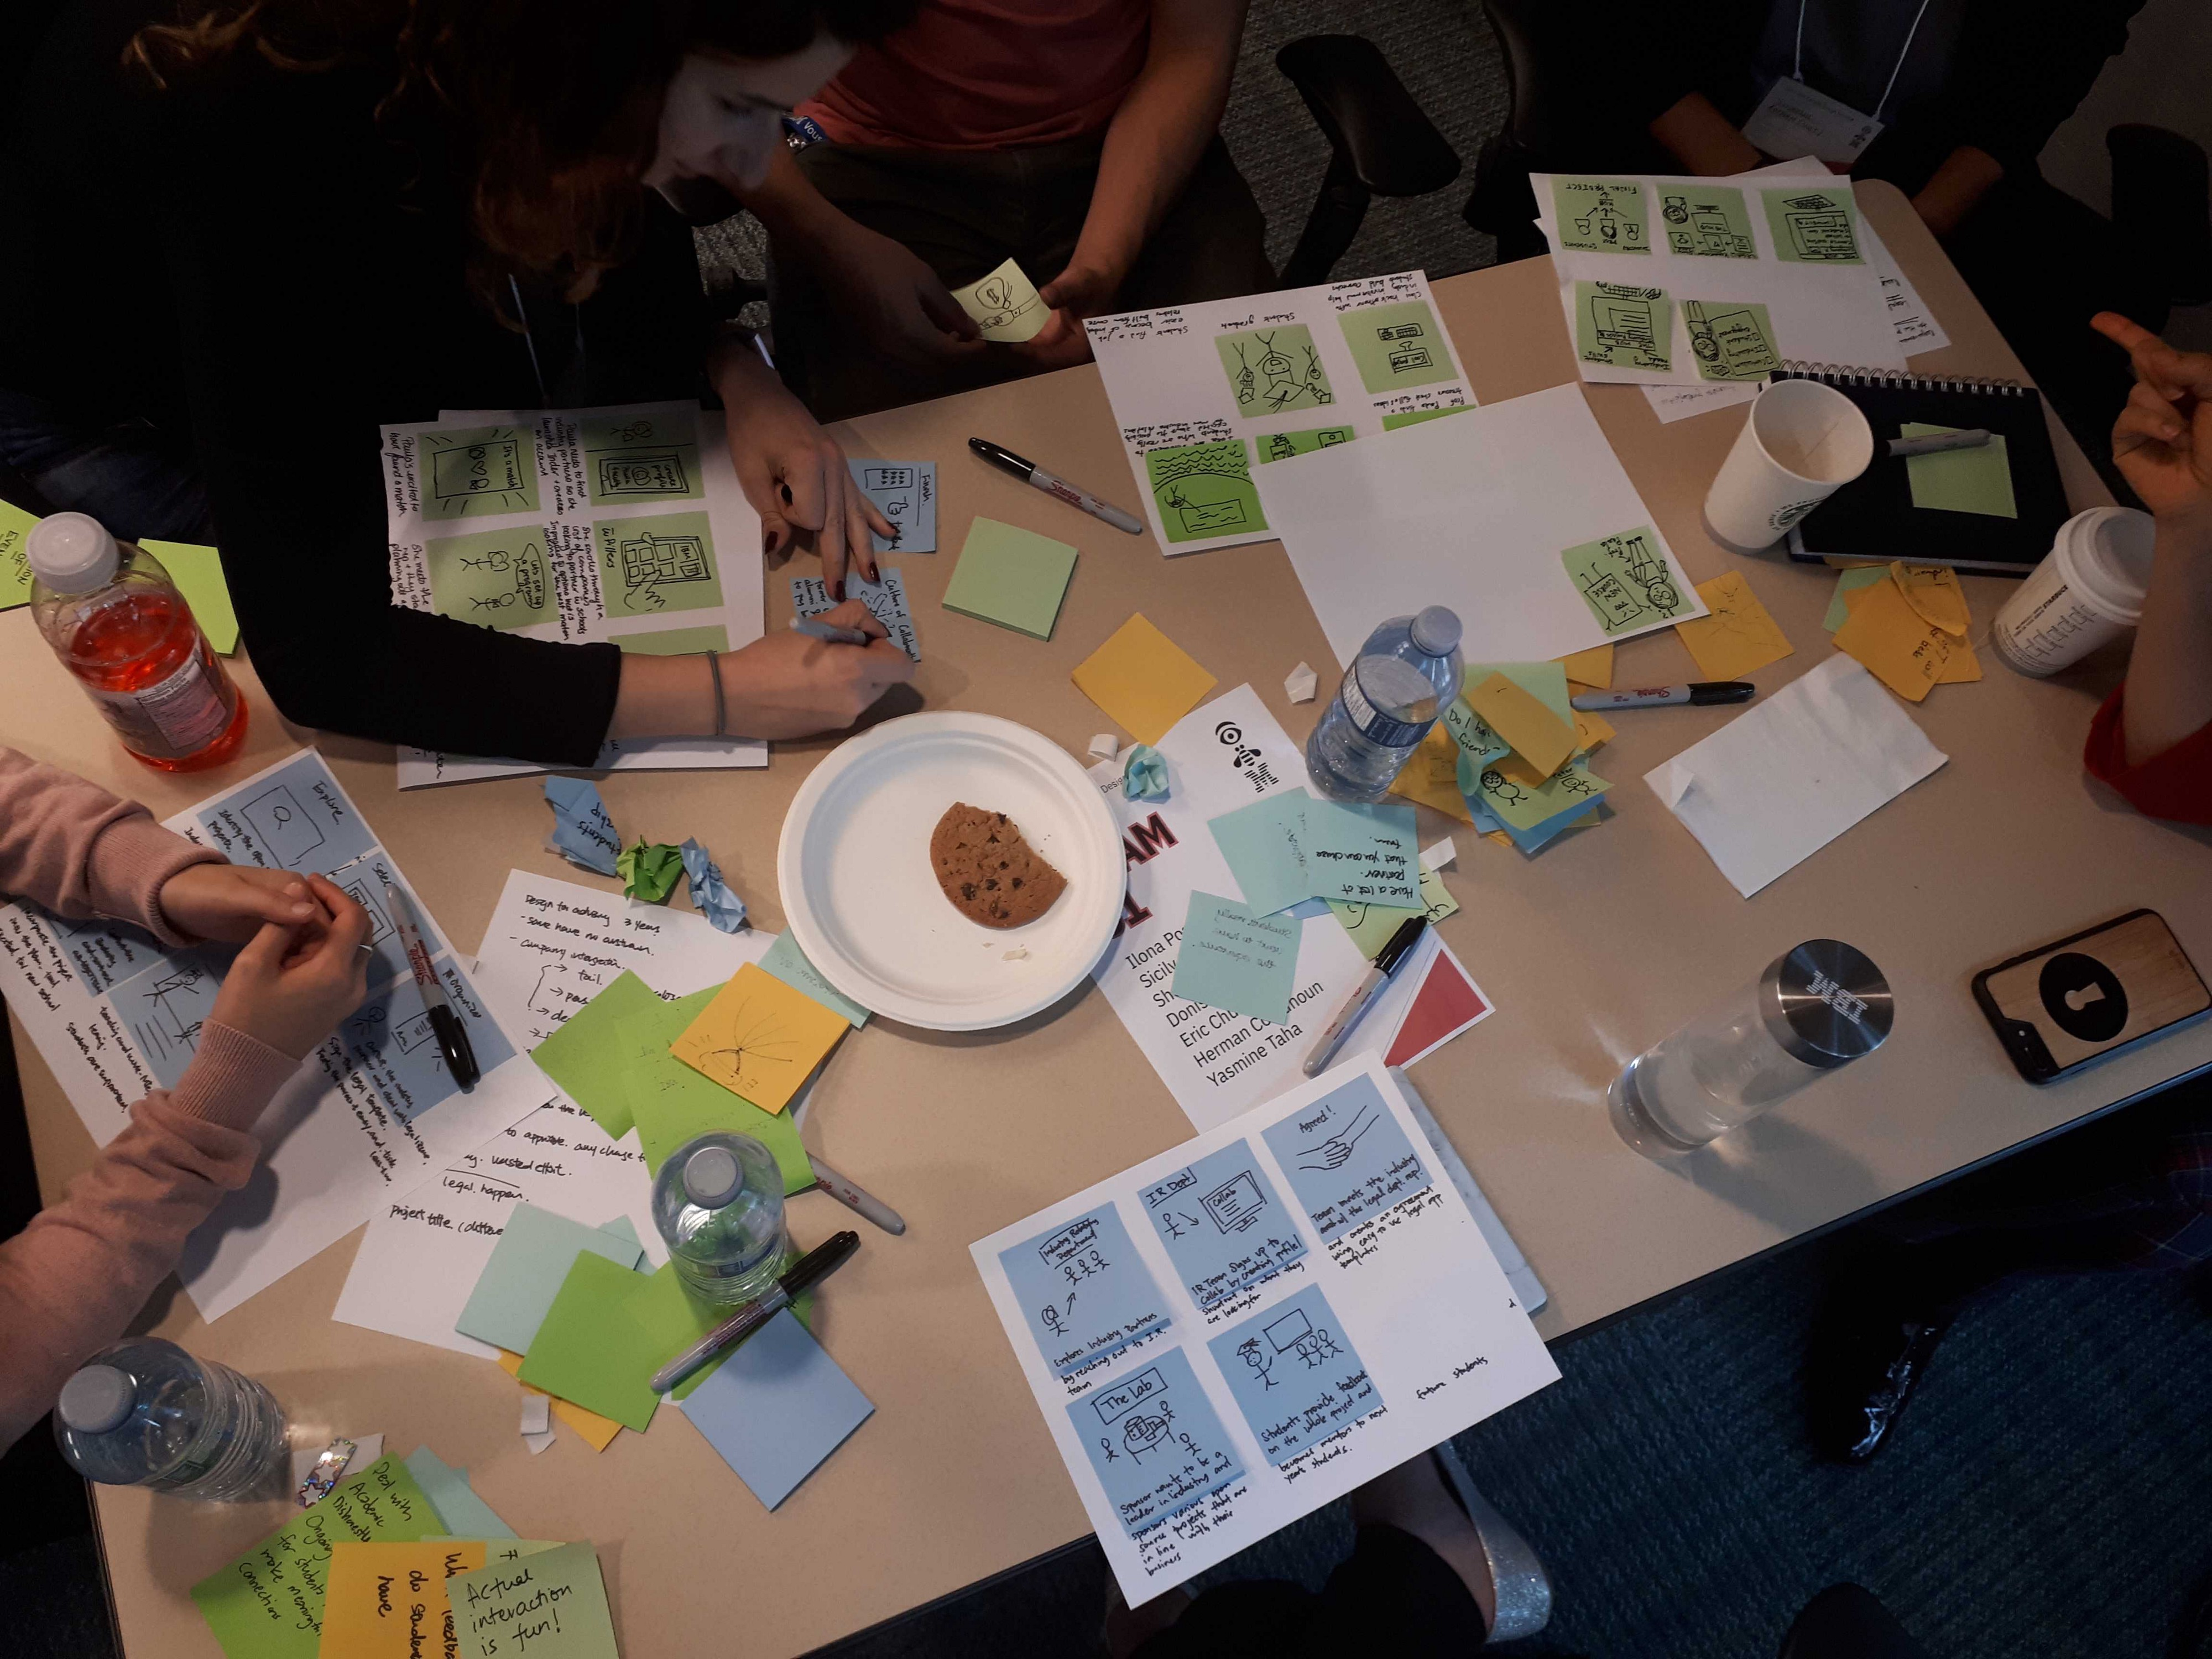 This is an image of our work in progress. Lots of stickies were used throughout this design challenge!